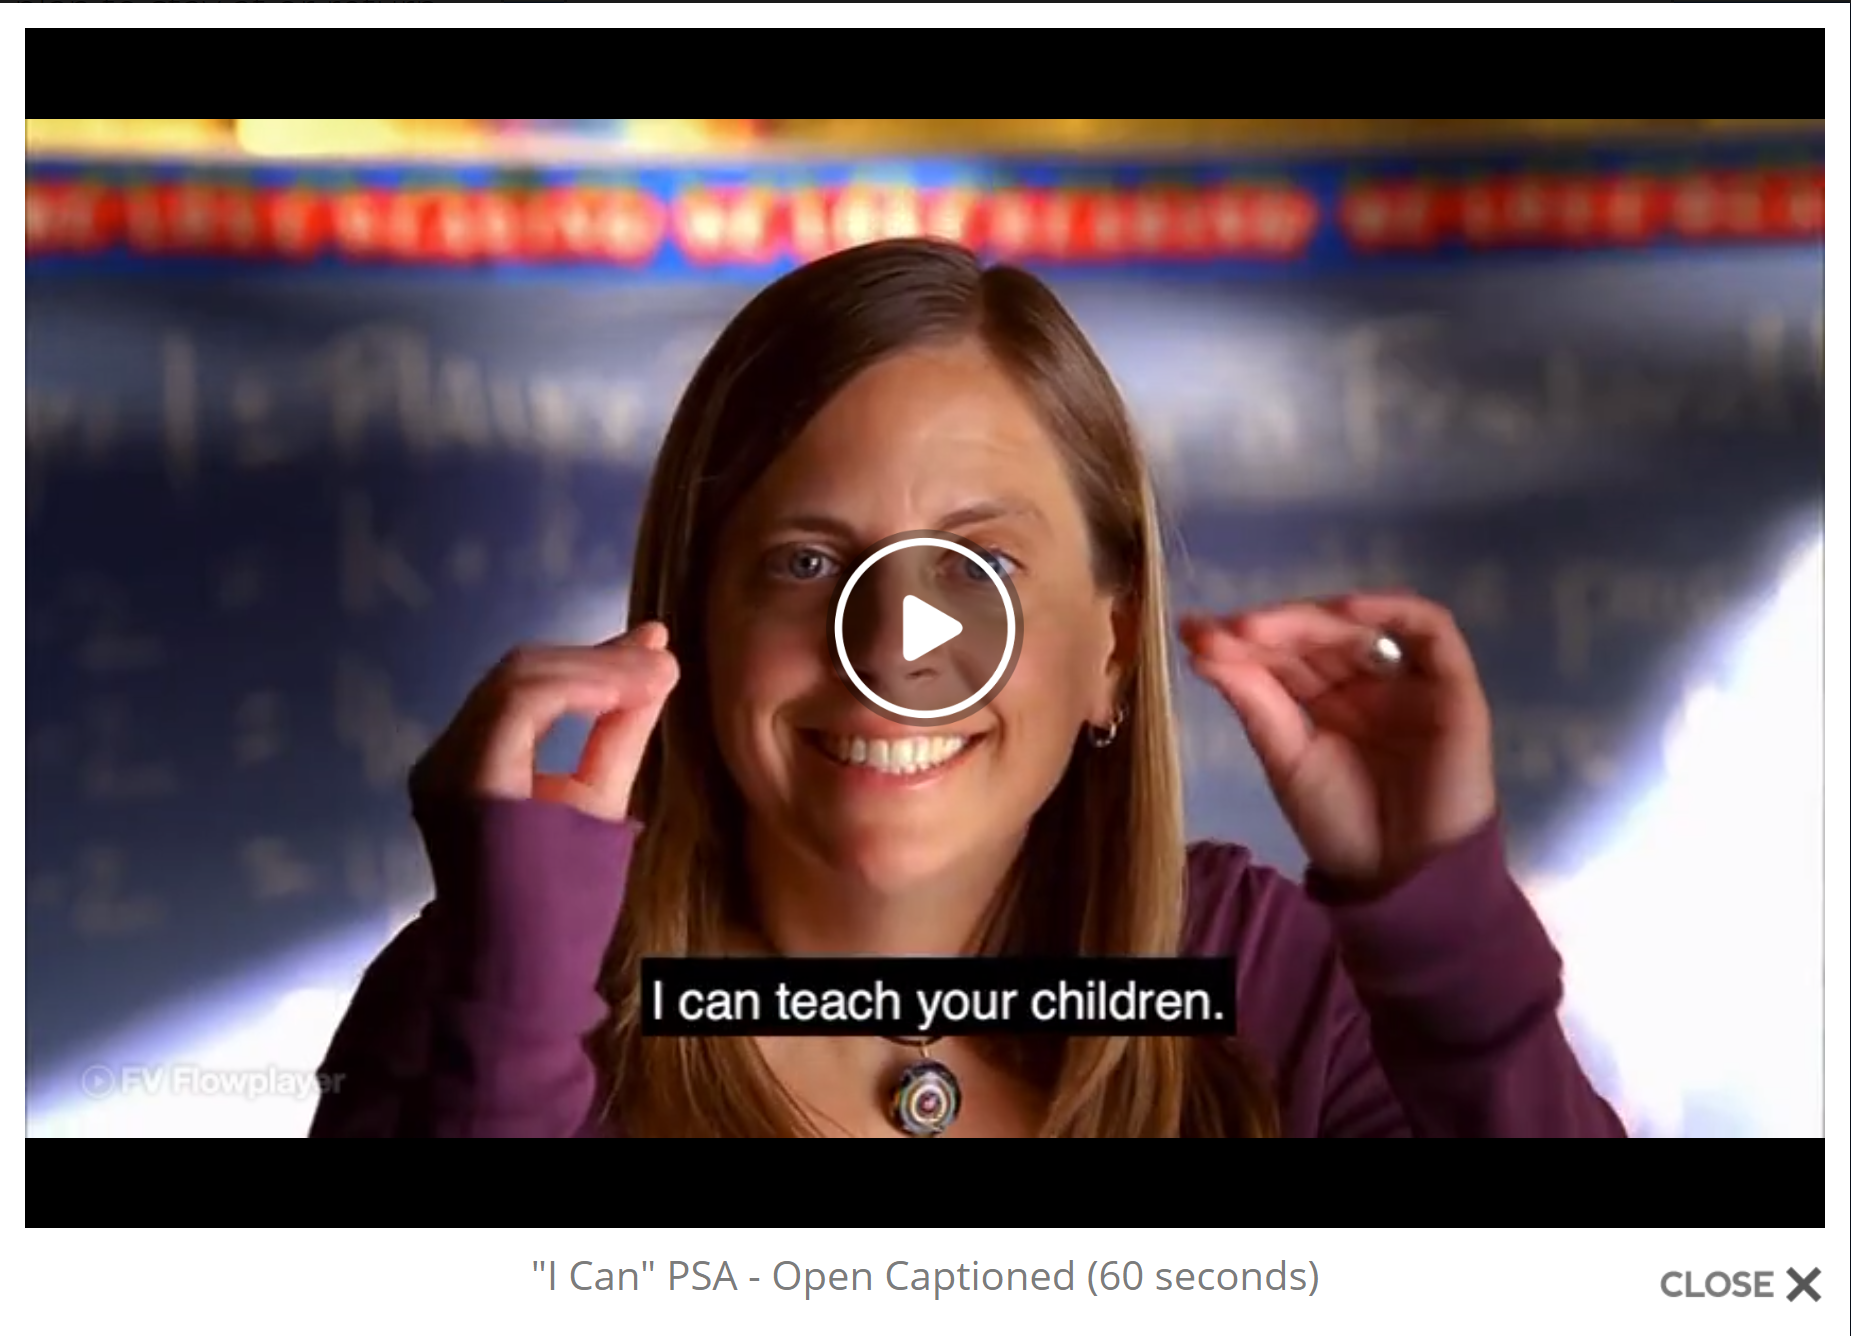 """Screenshot of a video frozen on the face of a woman who is signing to the camera. The caption at the bottom of the video screen says """"I can teach your children."""""""